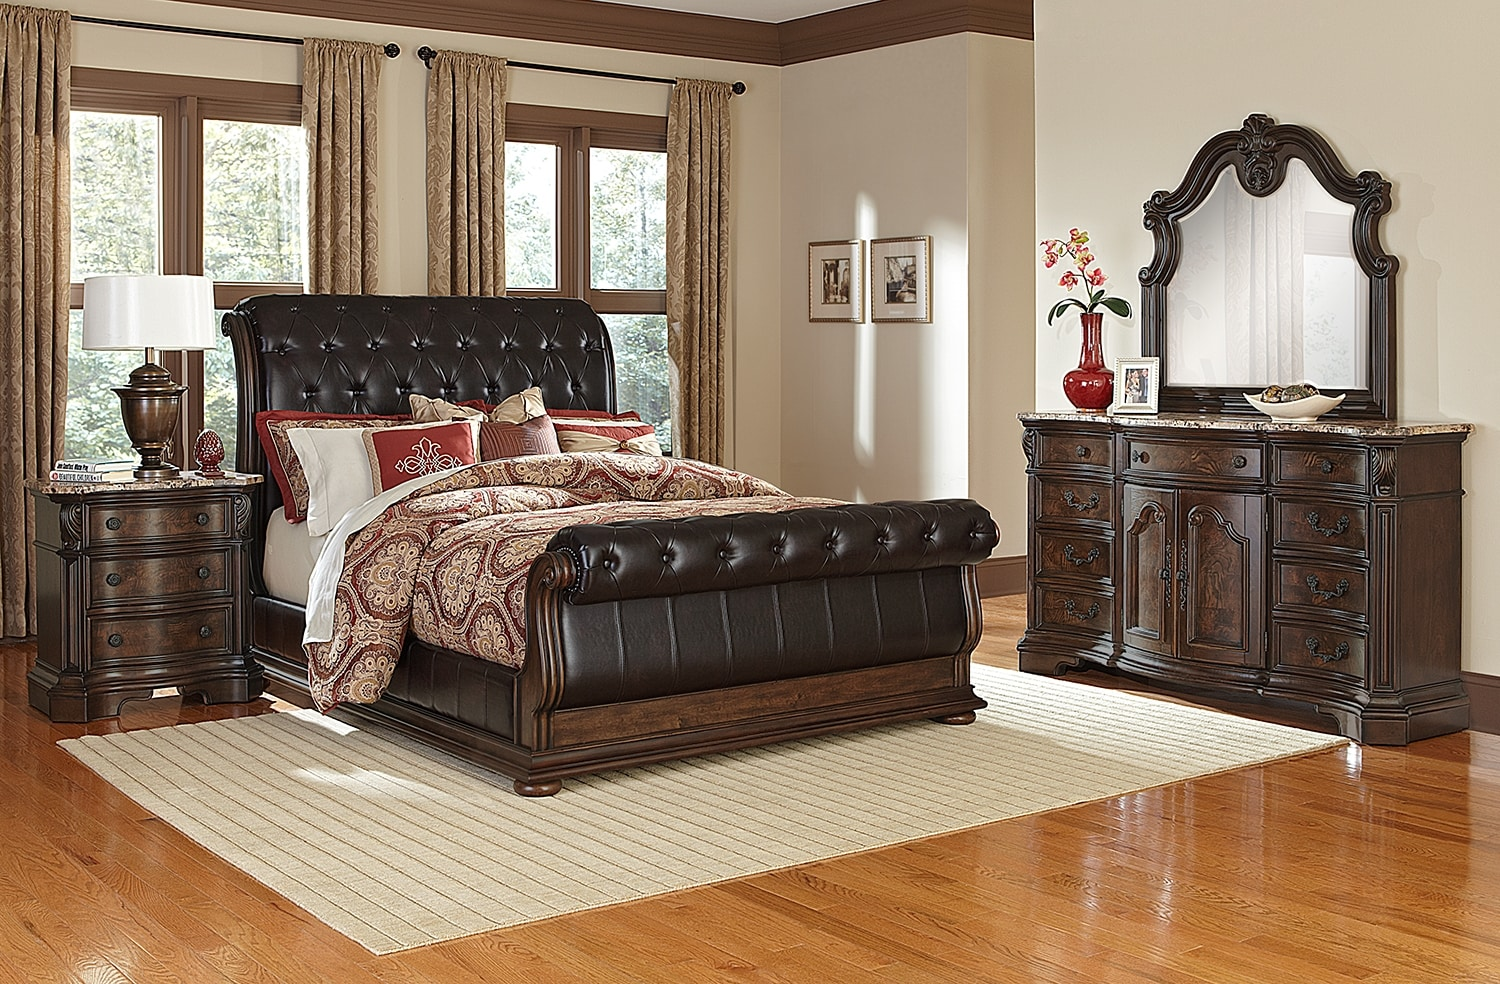 Monticello 6 piece king upholstered sleigh bedroom set - King size sleigh bed bedroom set ...